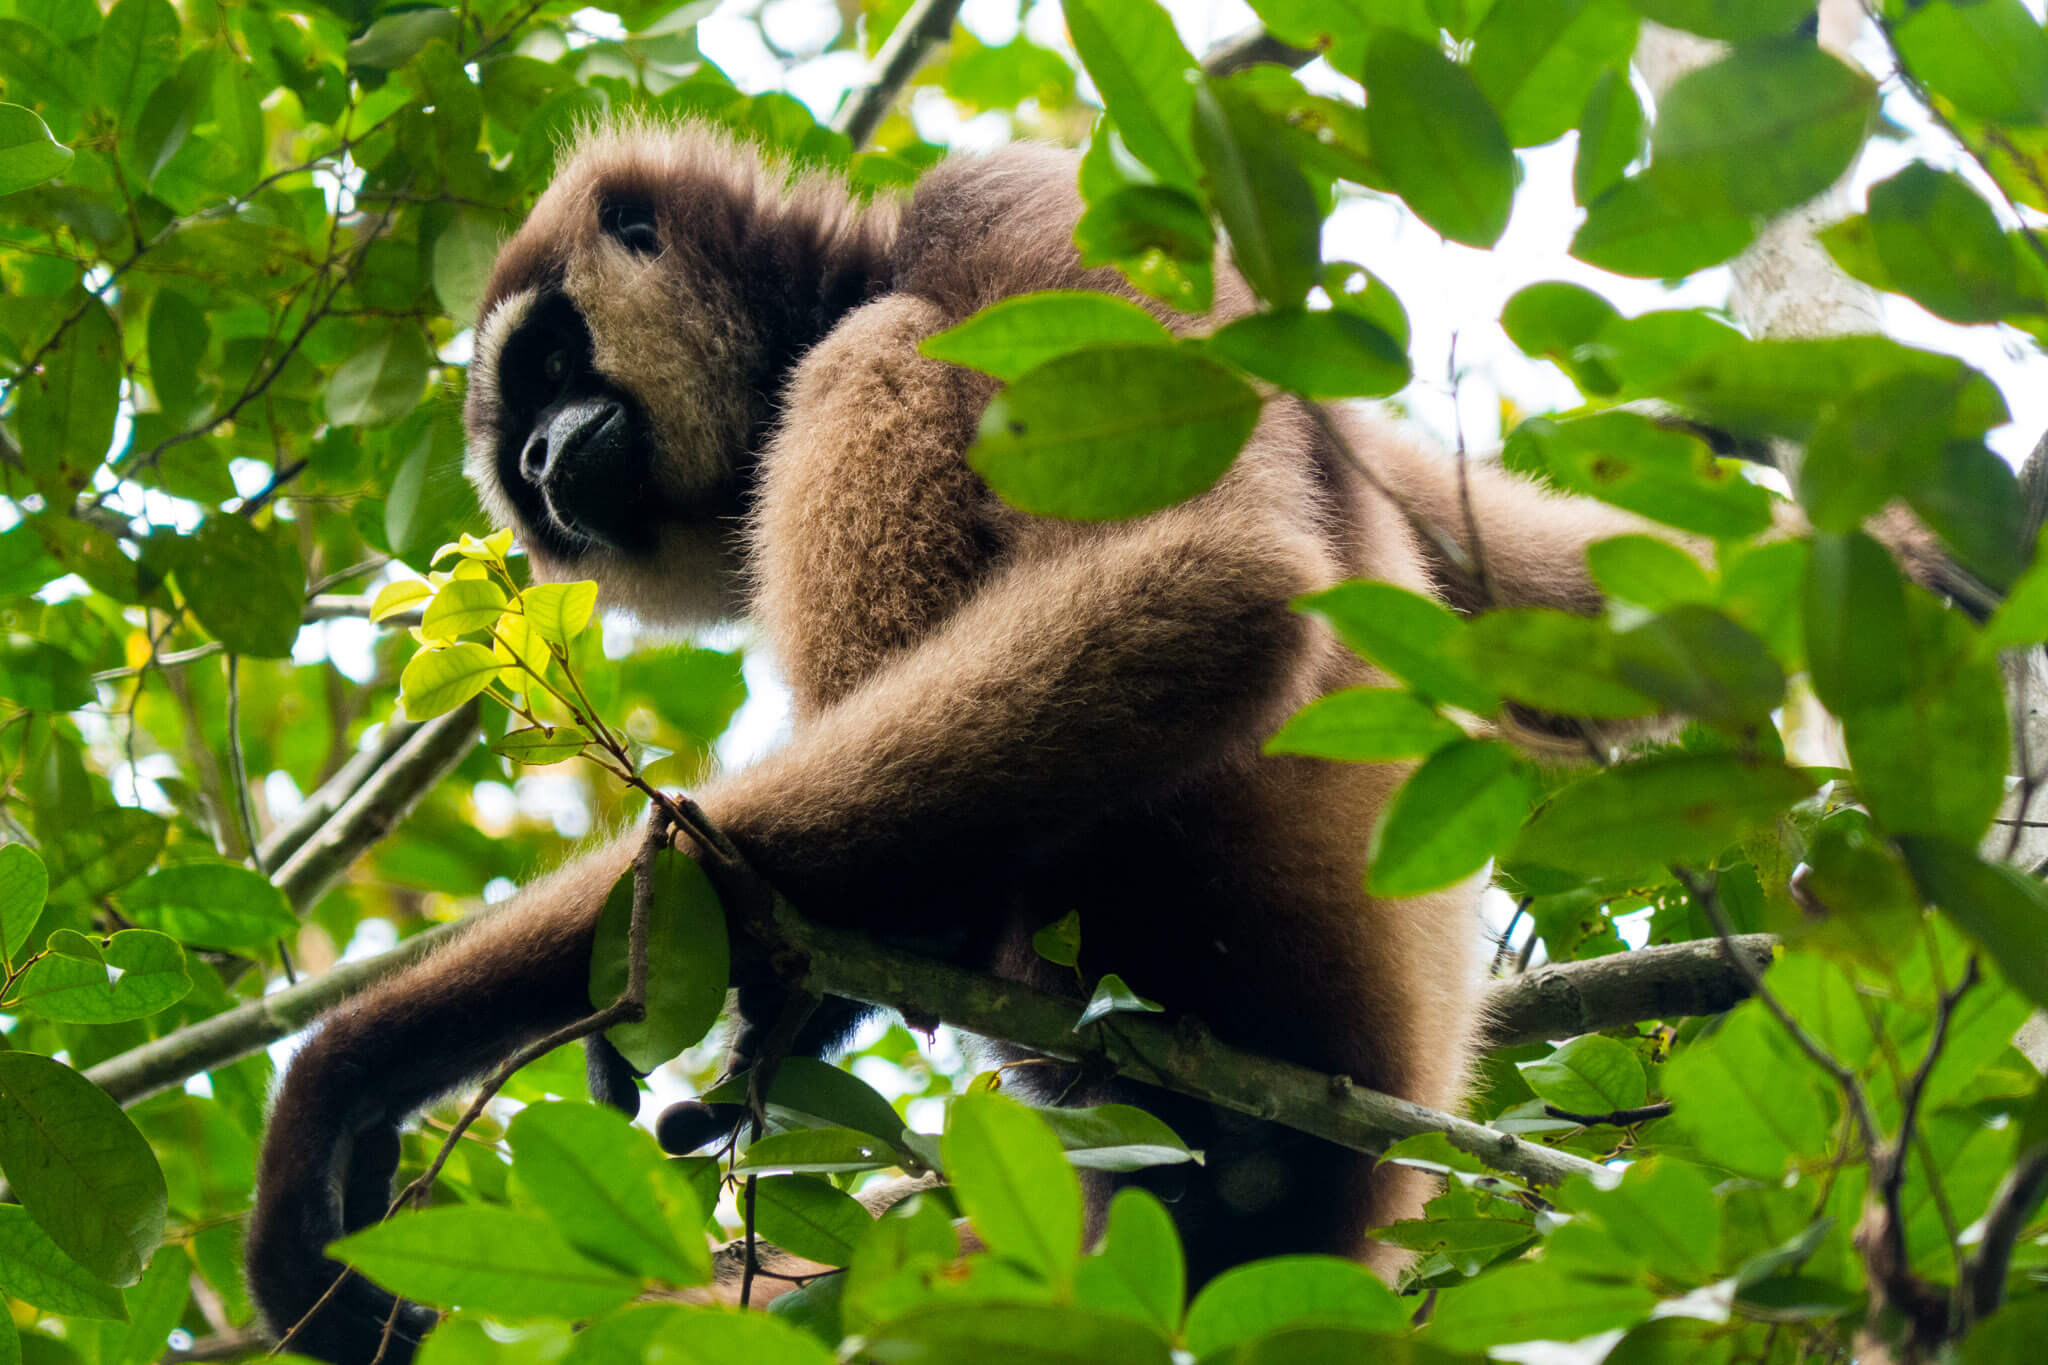 Gibbons and other monkeys in Tanjung Puting, Borneo